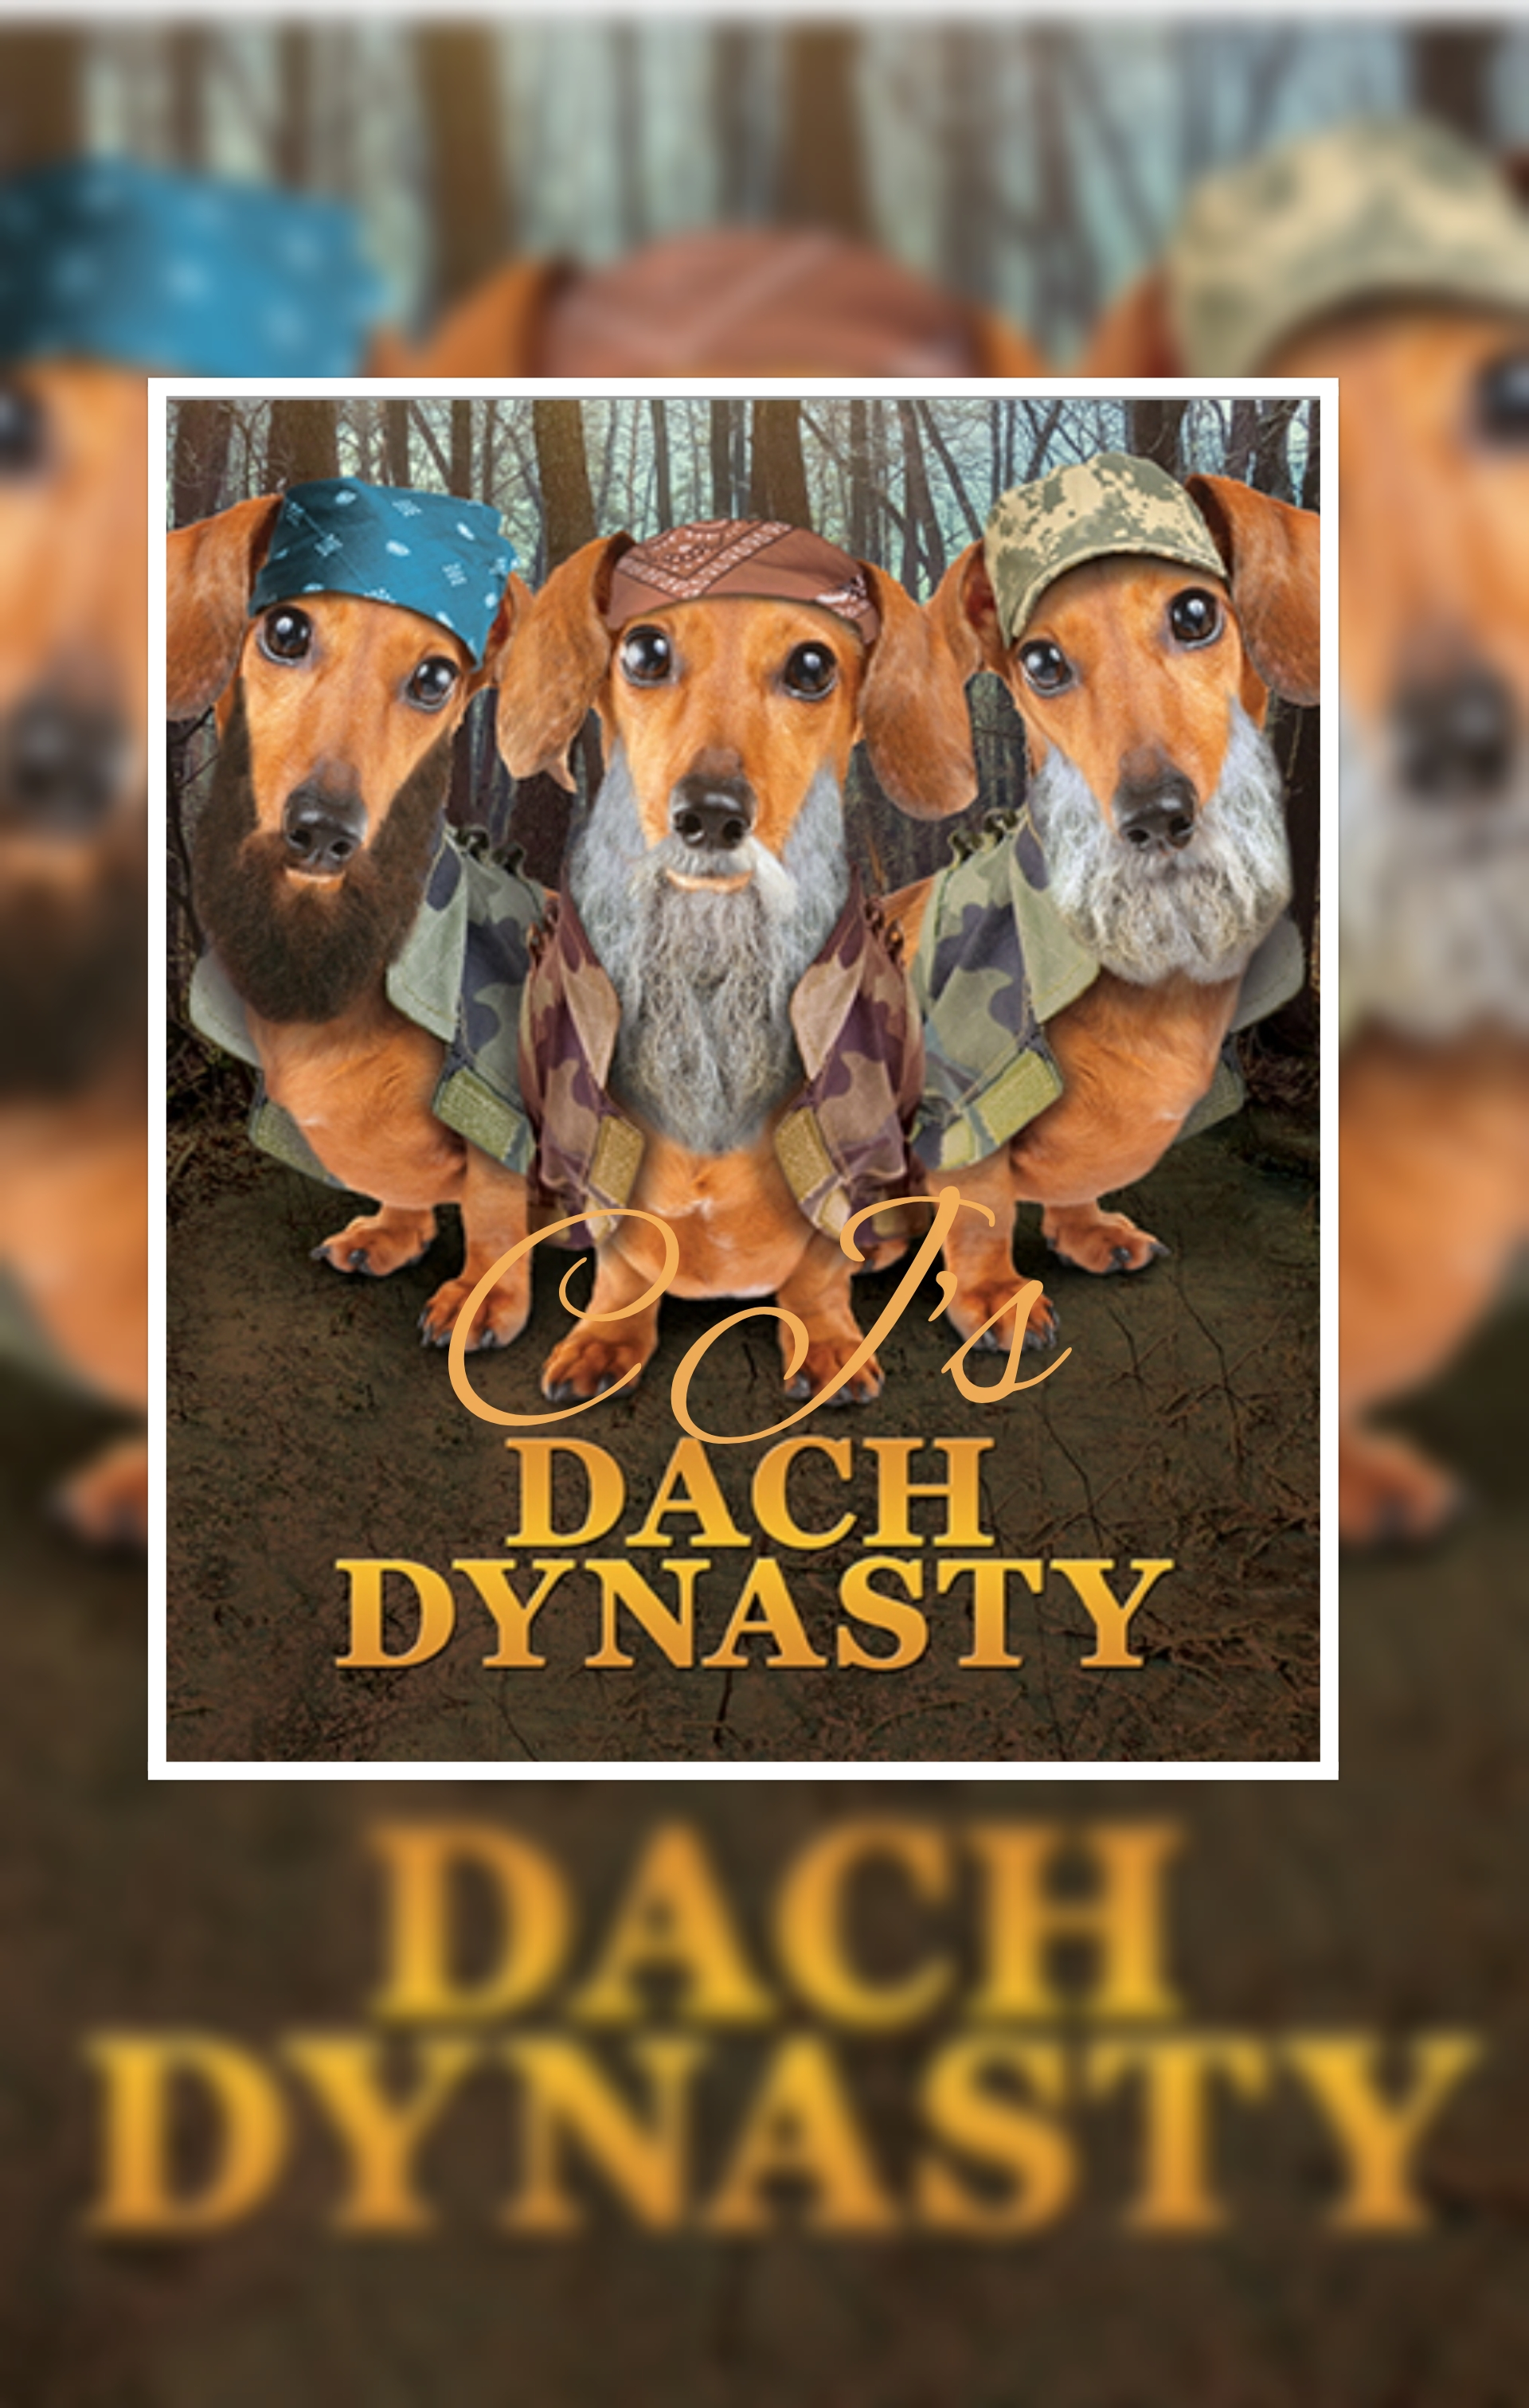 CJ's Dach Dynasty